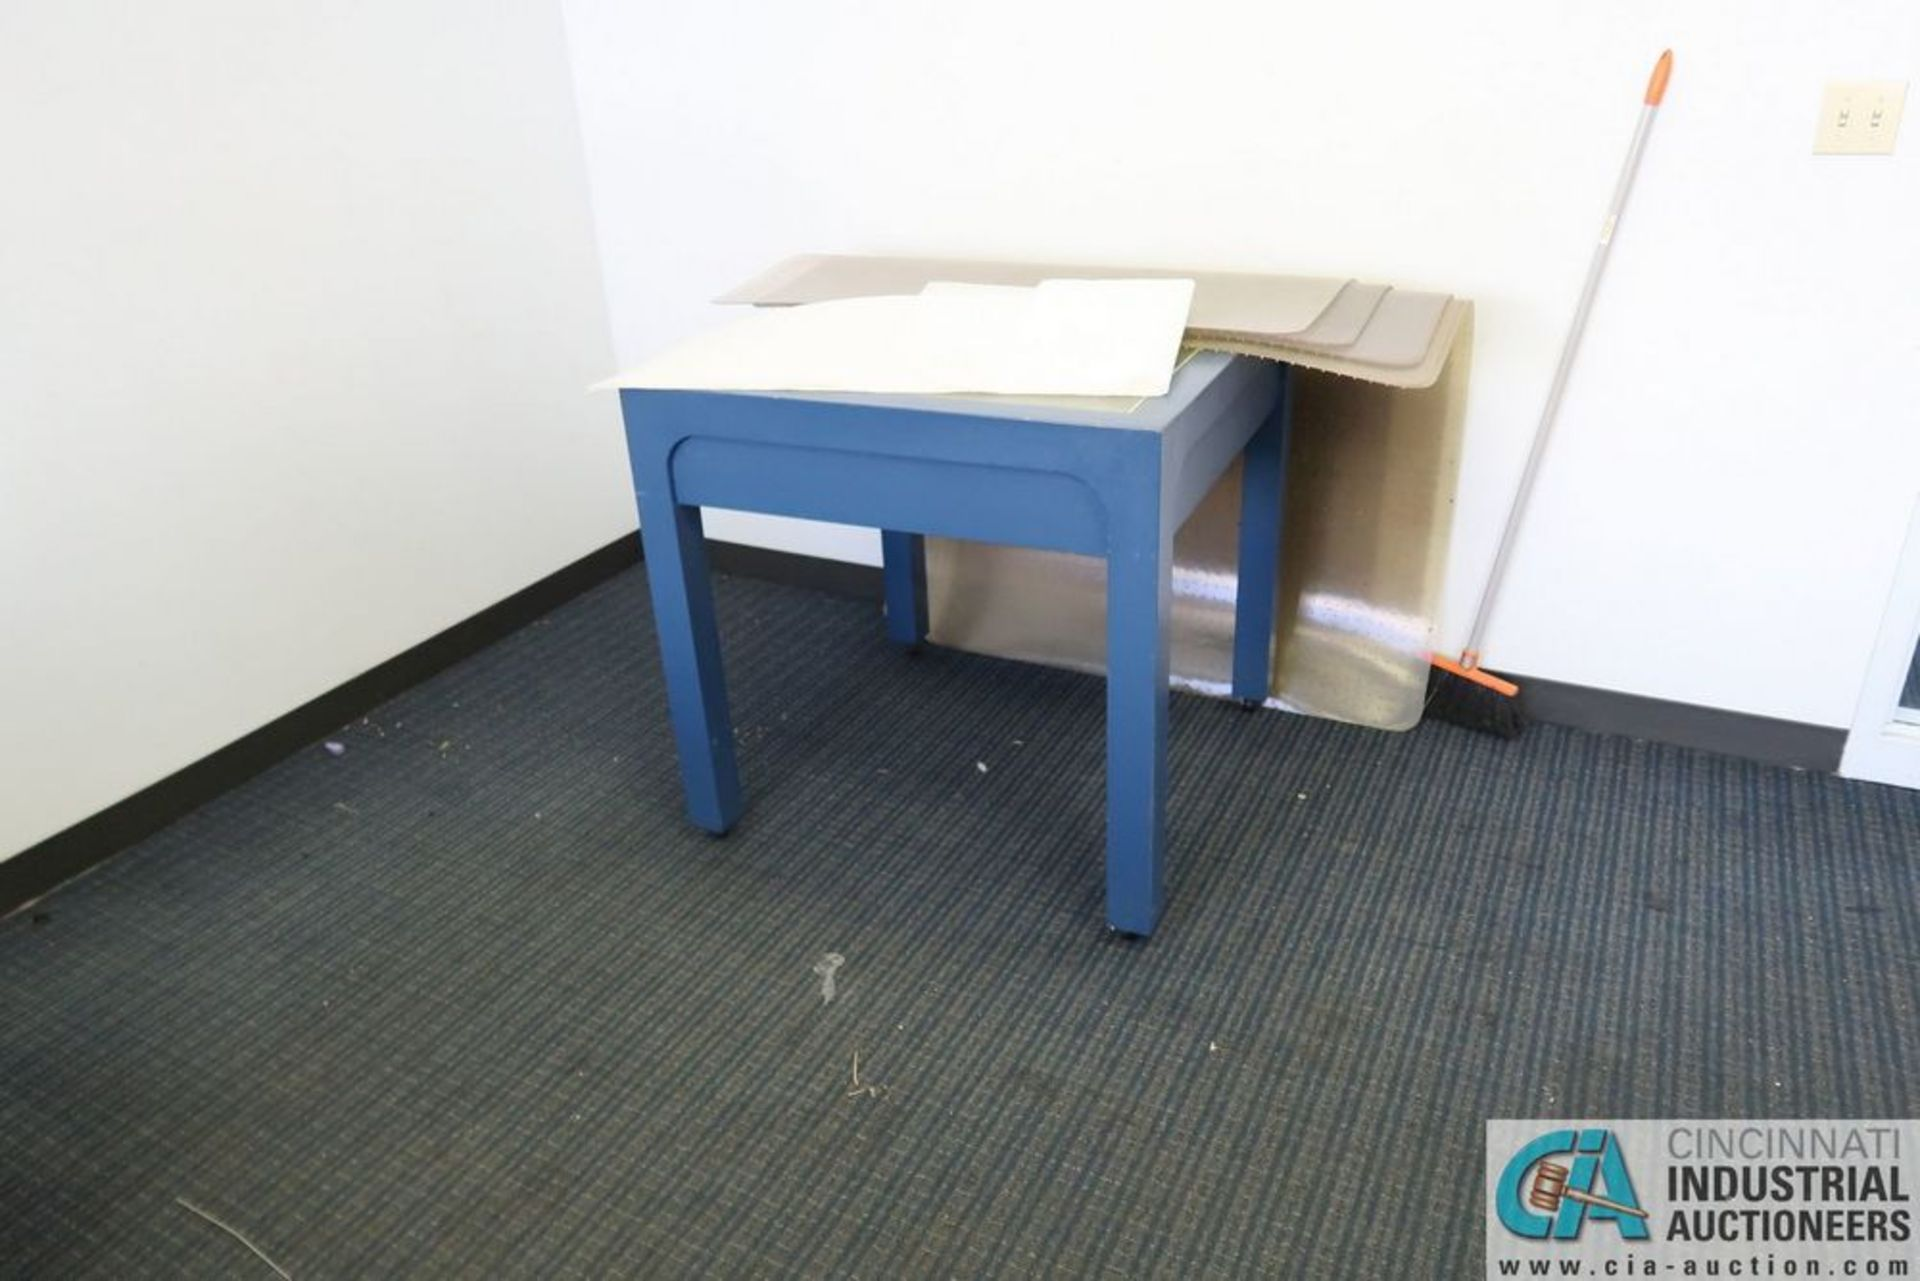 CONTENTS OF OFFICE INCLUDING U-SHAPED DESK, TABLE **OFFICE FURNITURE ONLY - NO ELECTRONICS** - Image 2 of 2